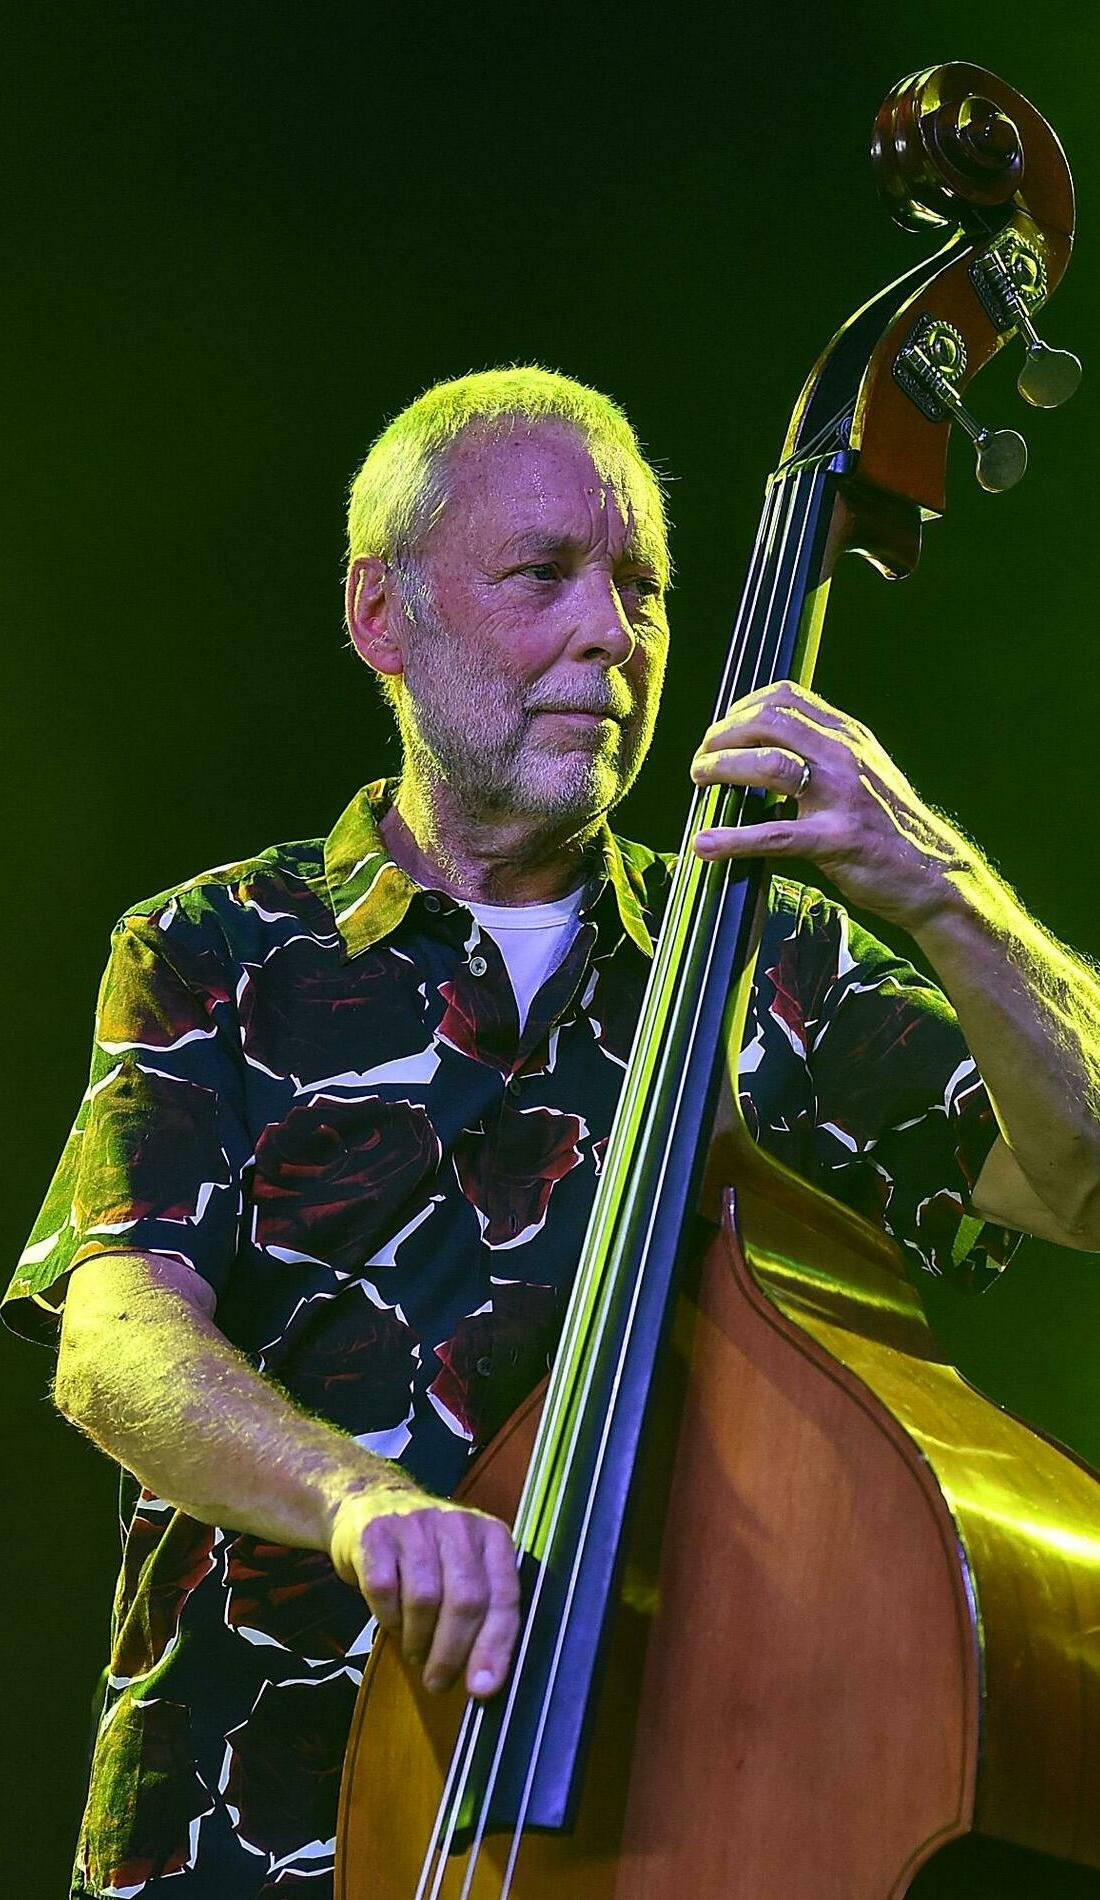 A Dave Holland live event